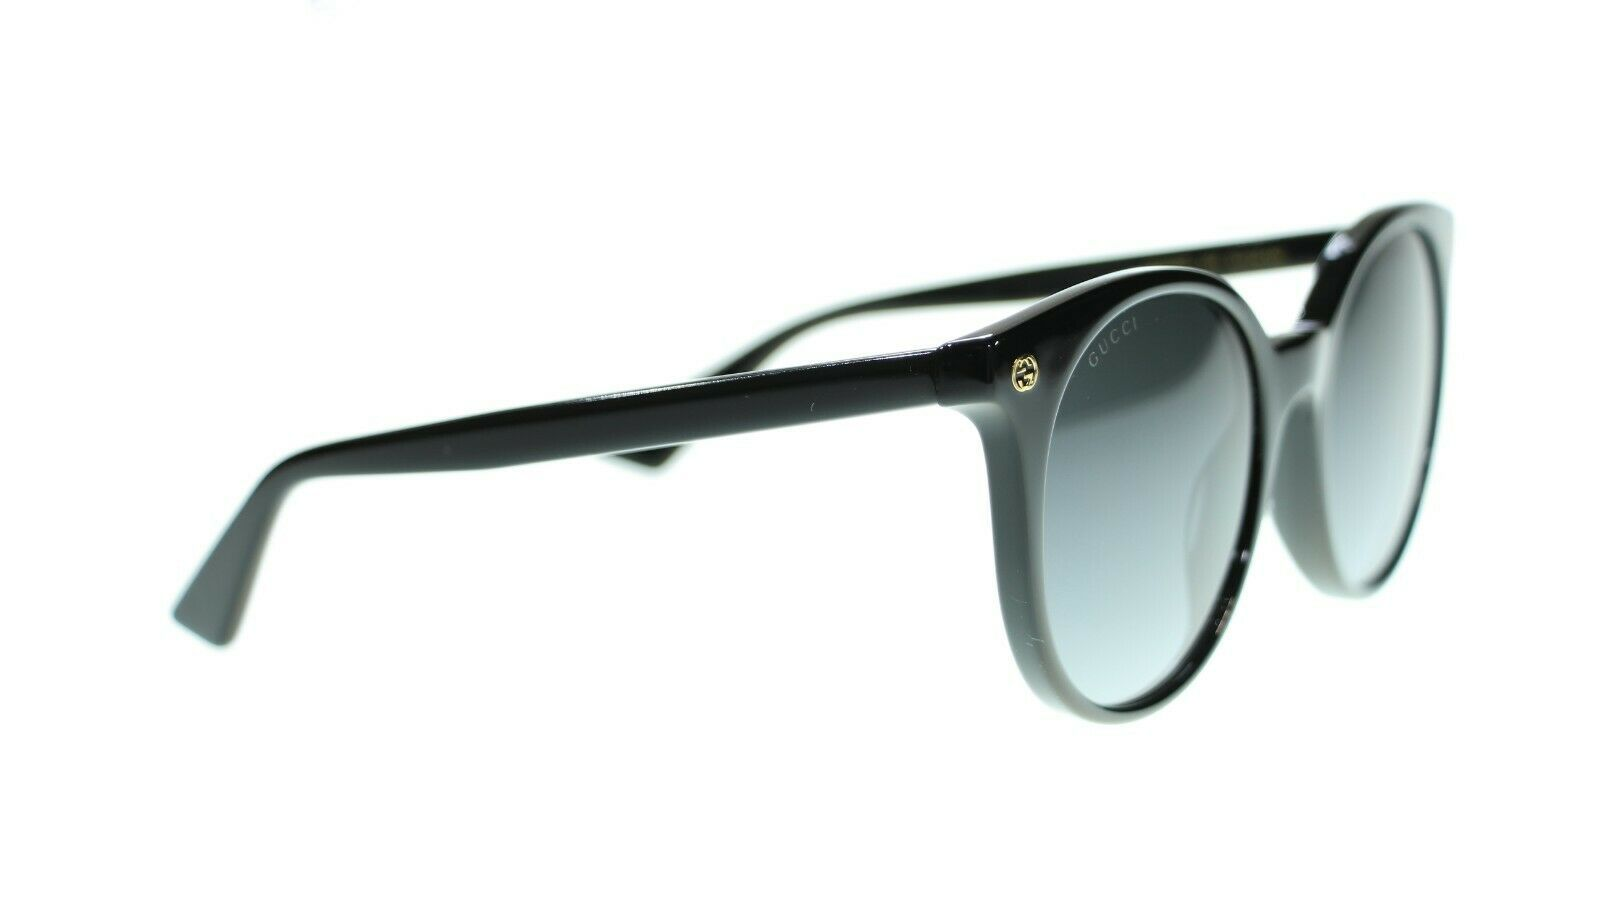 Gucci Women Round Sunglasses GG0091S 001 Black/Grey Gradient Lens 52mm